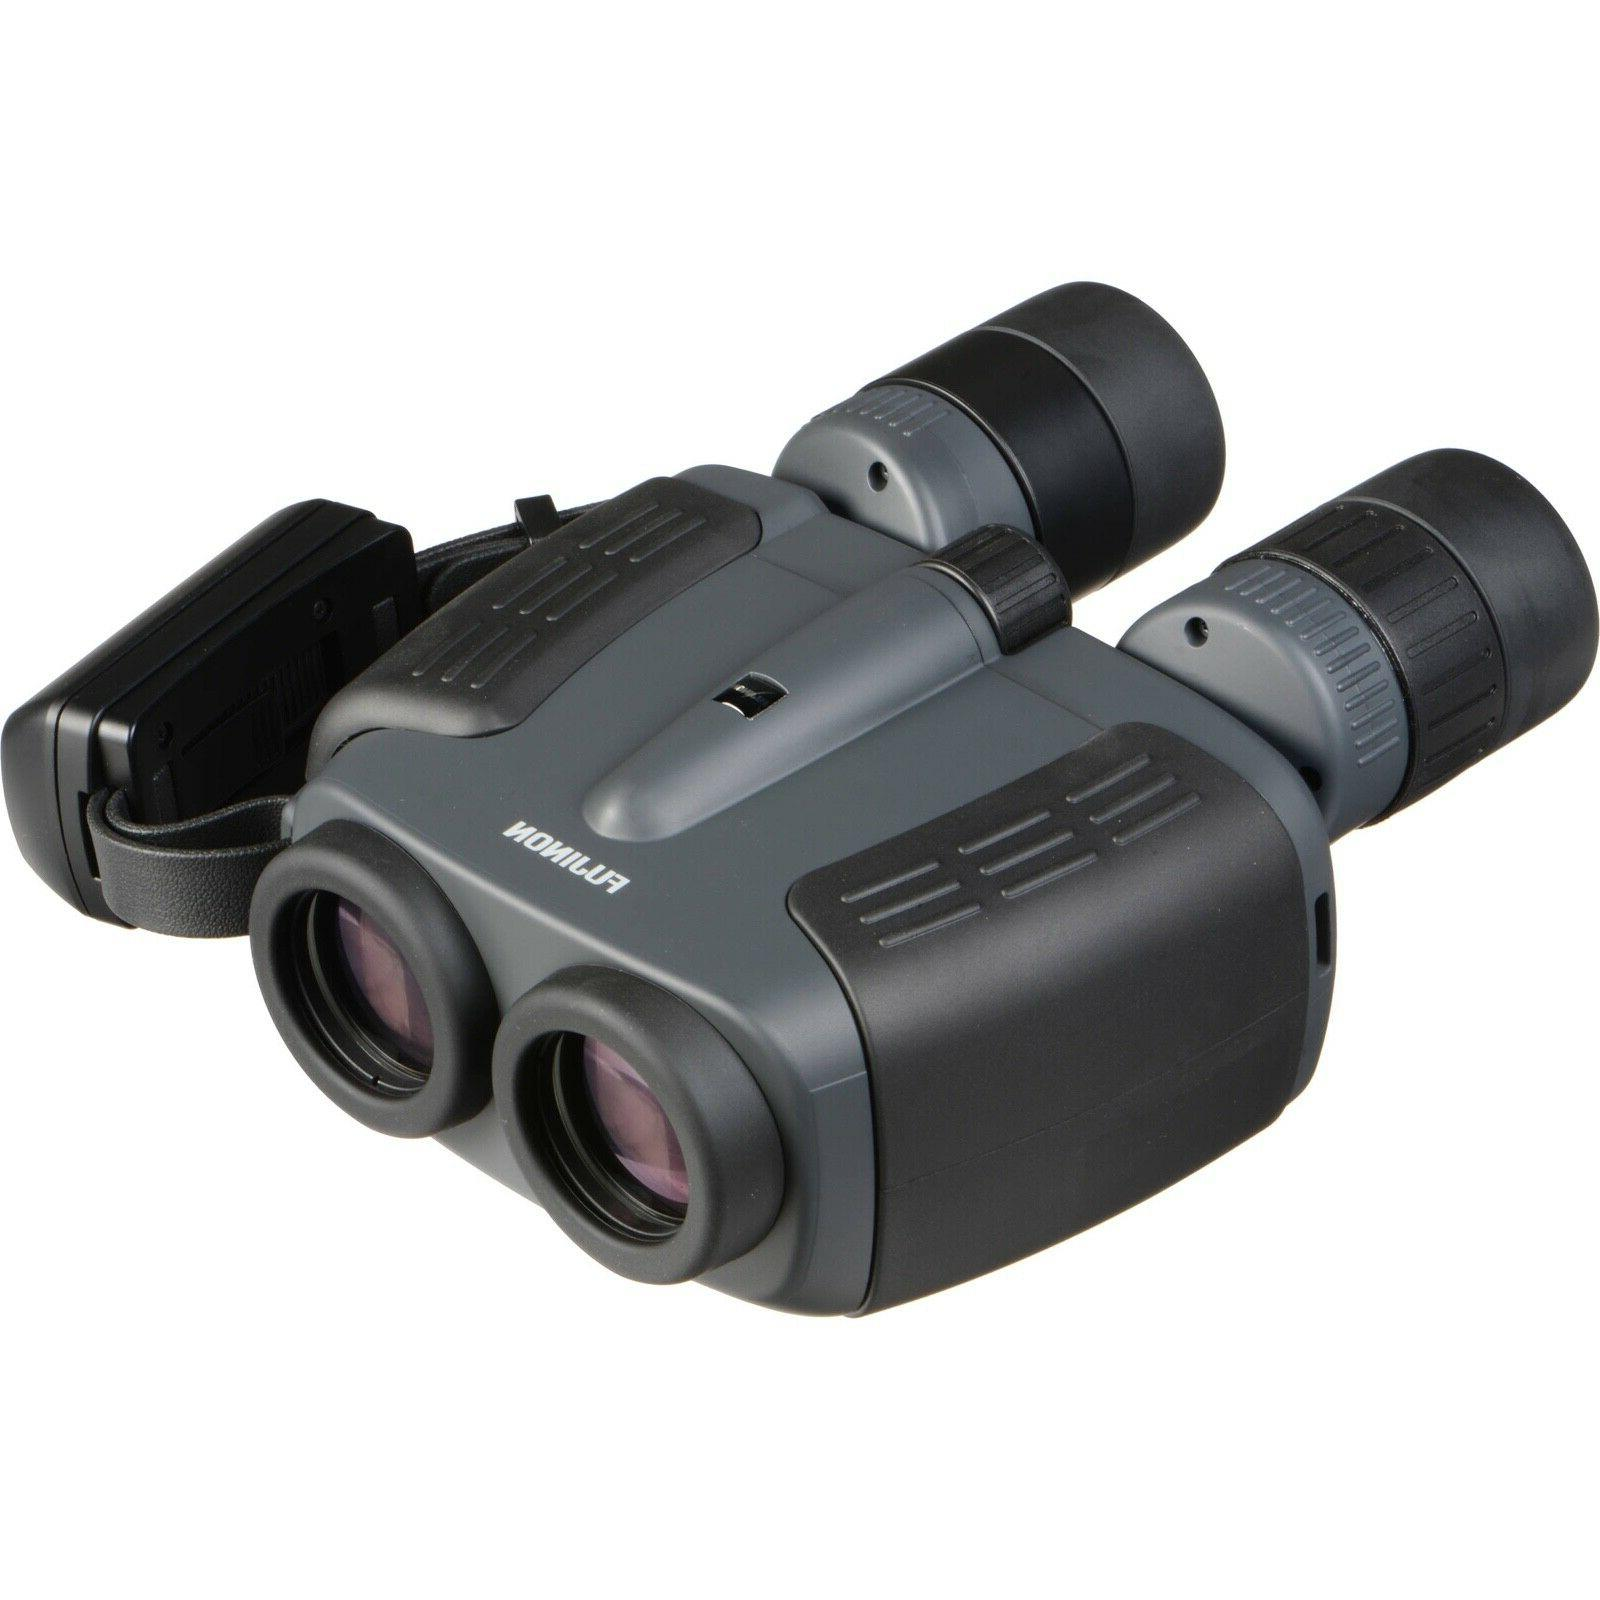 Fujinon Image-Stabilized Binocular 5.0° Angle of View